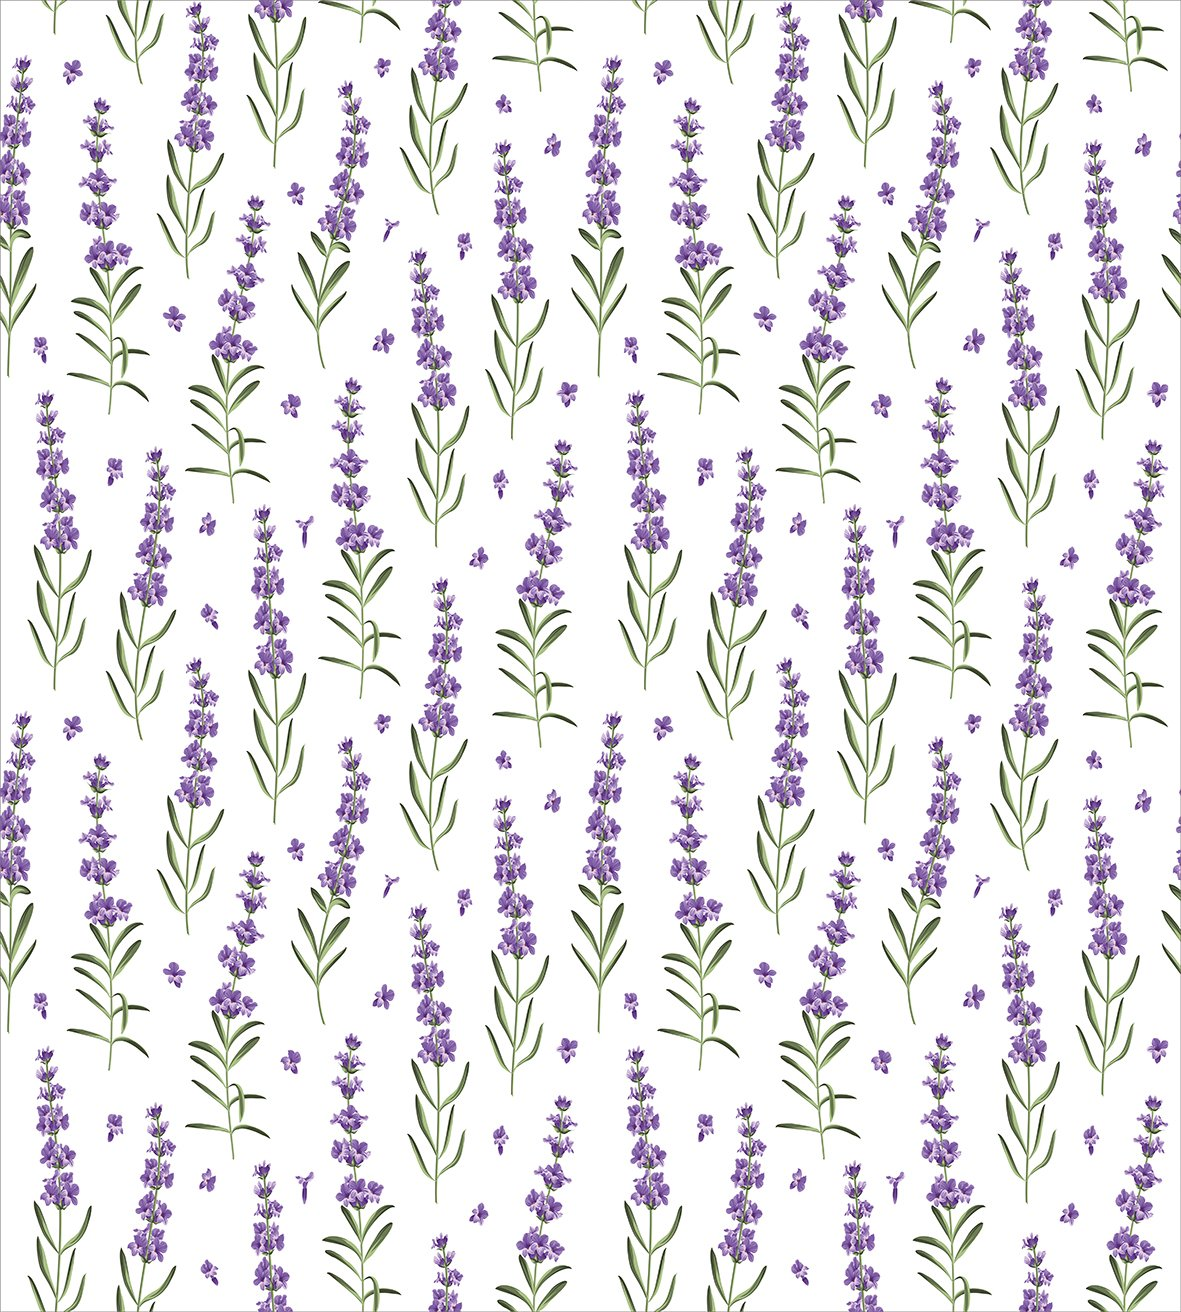 Decorative 3 Piece Bedding Set with 2 Pillow Shams Nature Pattern with Delicate Lavender Twigs Fresh Organic Plants Herb Lavender Queen Size Duvet Cover Set by Ambesonne Violet Sage Green White